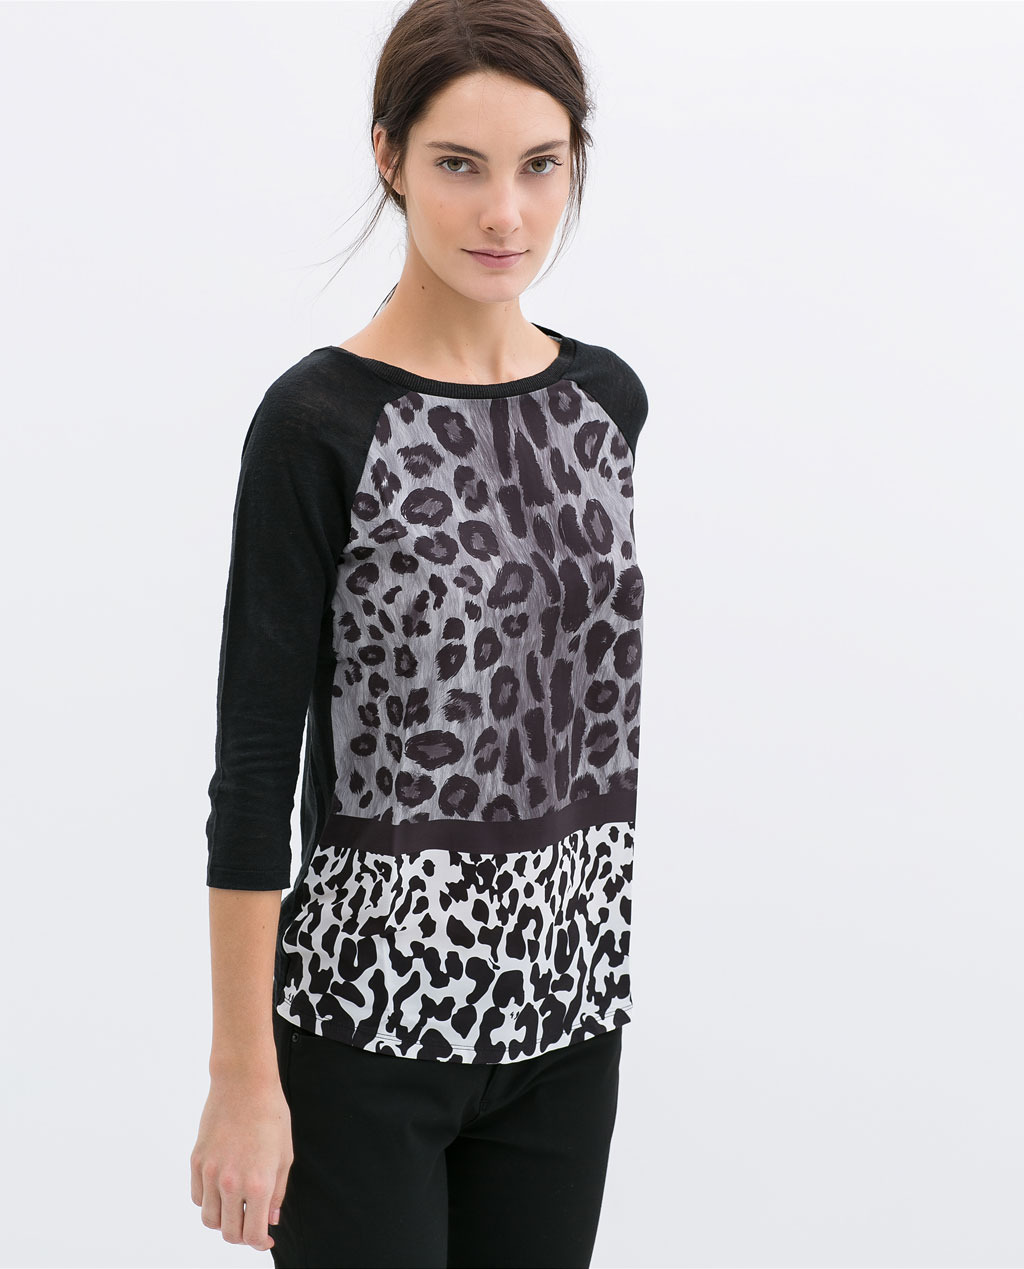 Printed Combined T Shirt - neckline: round neck; sleeve style: raglan; secondary colour: white; predominant colour: black; occasions: casual, evening, creative work; length: standard; style: top; fibres: linen - 100%; fit: straight cut; sleeve length: 3/4 length; texture group: linen; pattern: animal print; trends: world traveller, monochrome; season: s/s 2014; pattern size: big & busy (top)